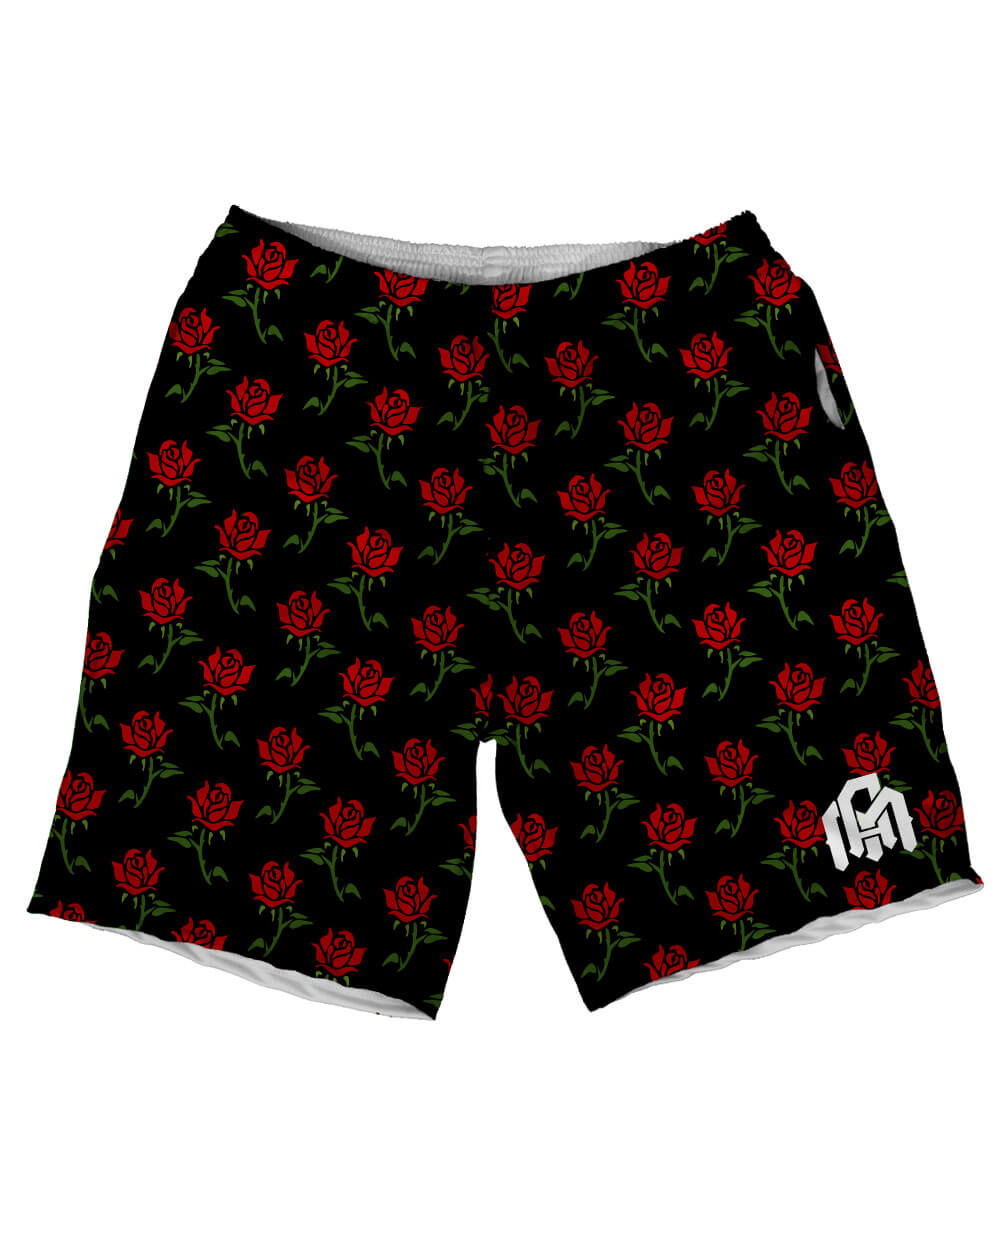 Roses Men's Athletic Shorts-Front